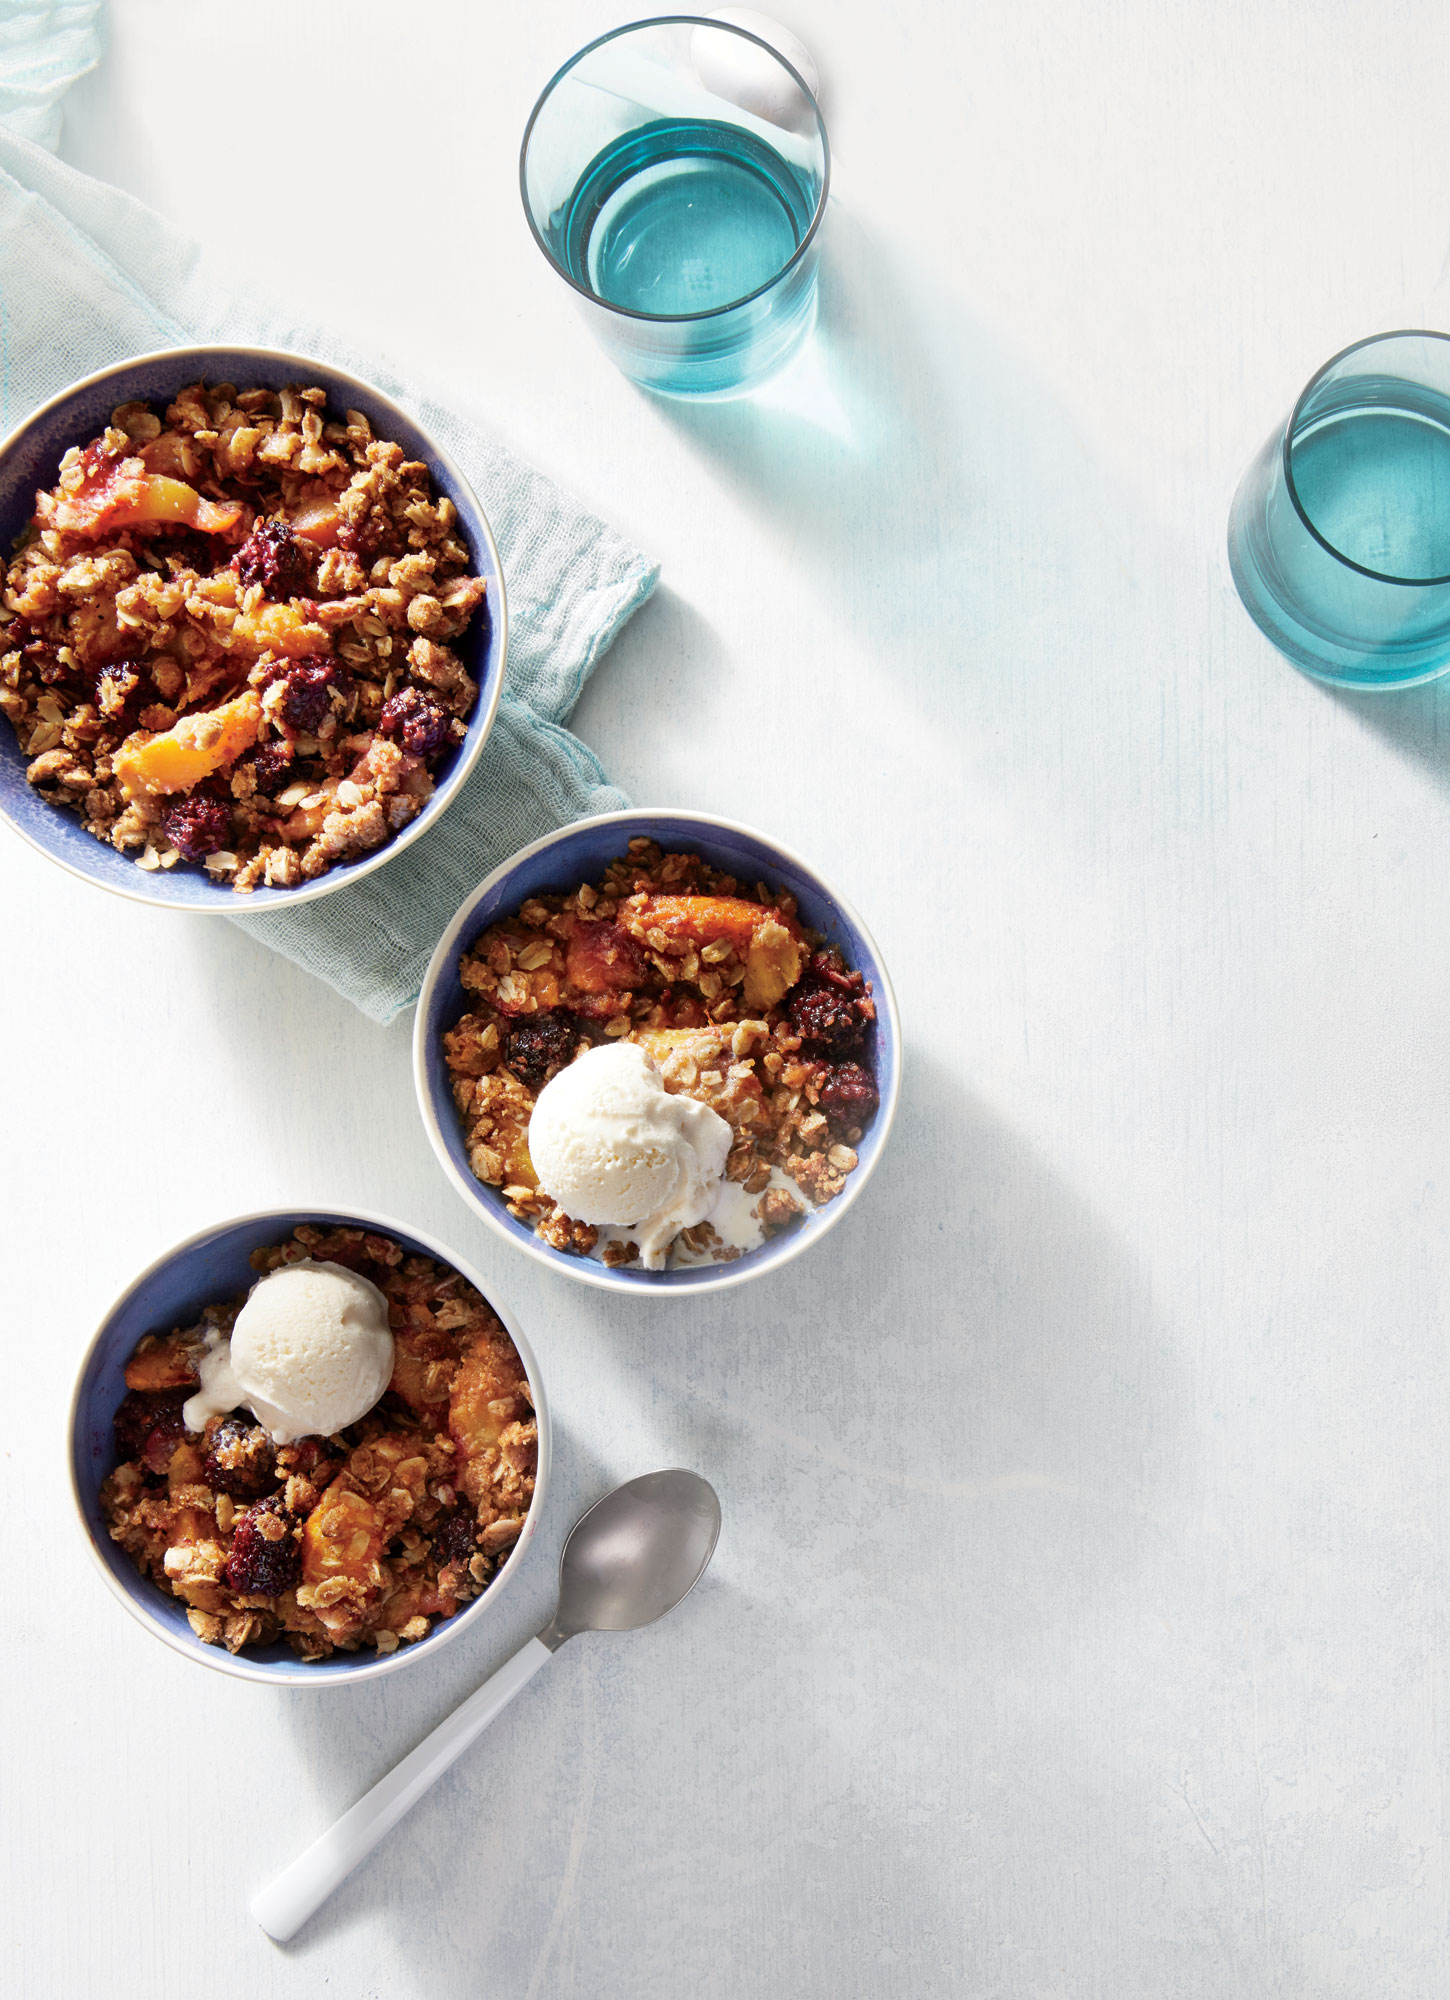 ck- Blackberry-Peach Slow Cooker Crumble